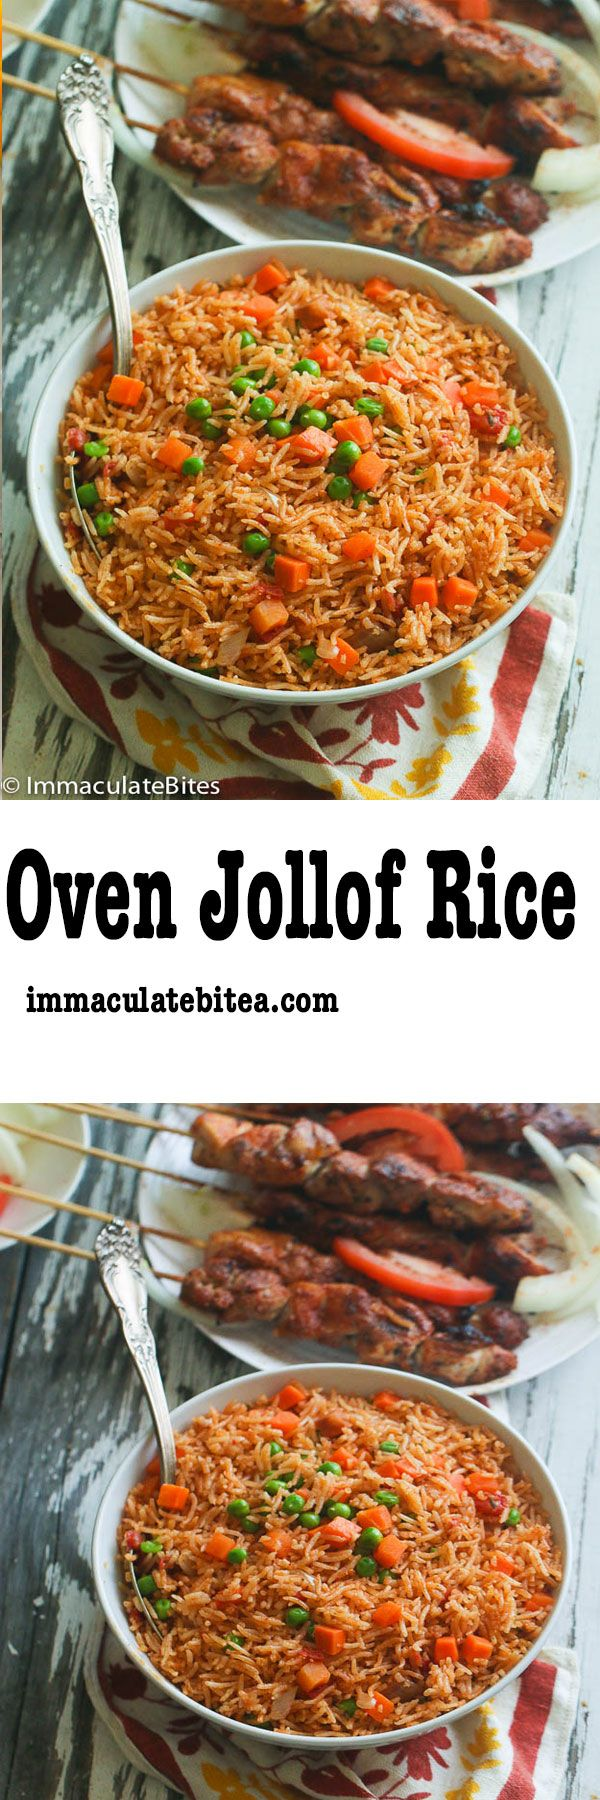 Easy, flavorful and perfectly cooked Jollof rice made completely in the in the oven, 5 min prep  – no blending or stirring involve. What more could you wish for? Simply put, the easiest rice you would ever make. Jollof rice is a legendary one-pot dish that's ubiquitous in Nigeria, Cameroon, Ghana, Liberia, Togo, and …